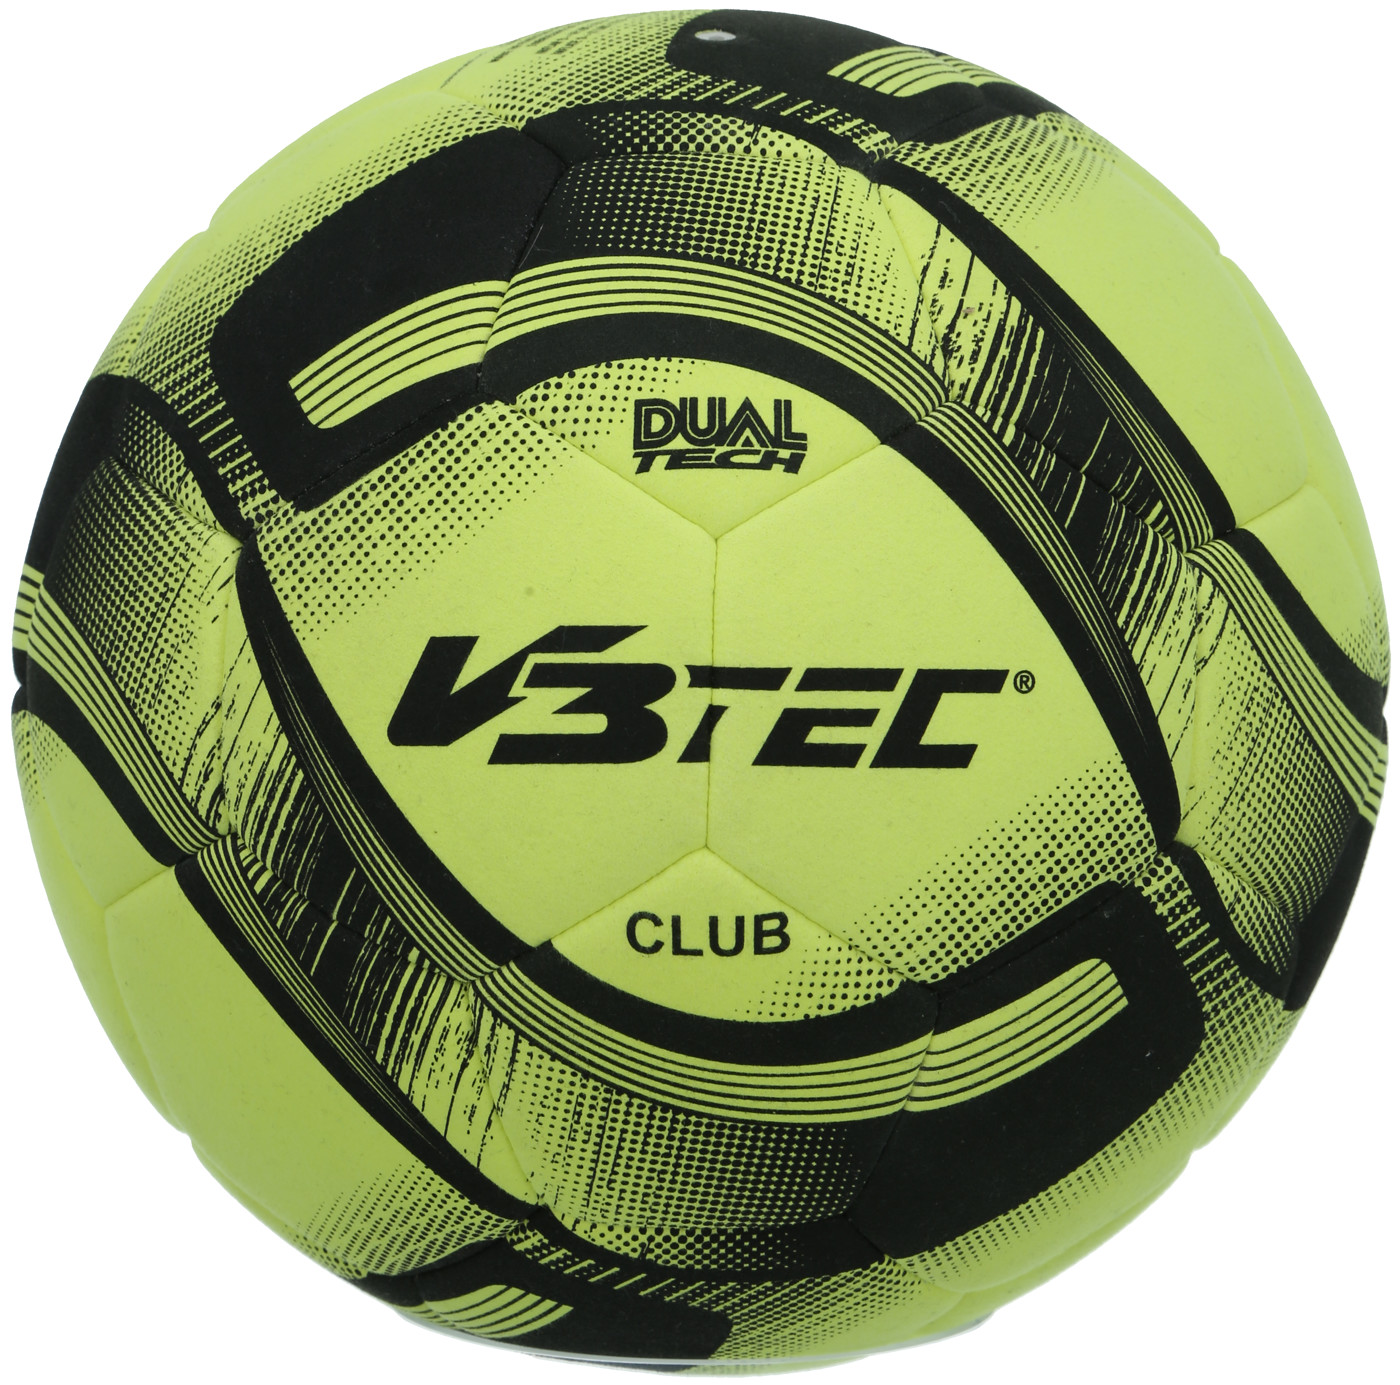 V3TEC CLUB INDOOR DUAL TECH